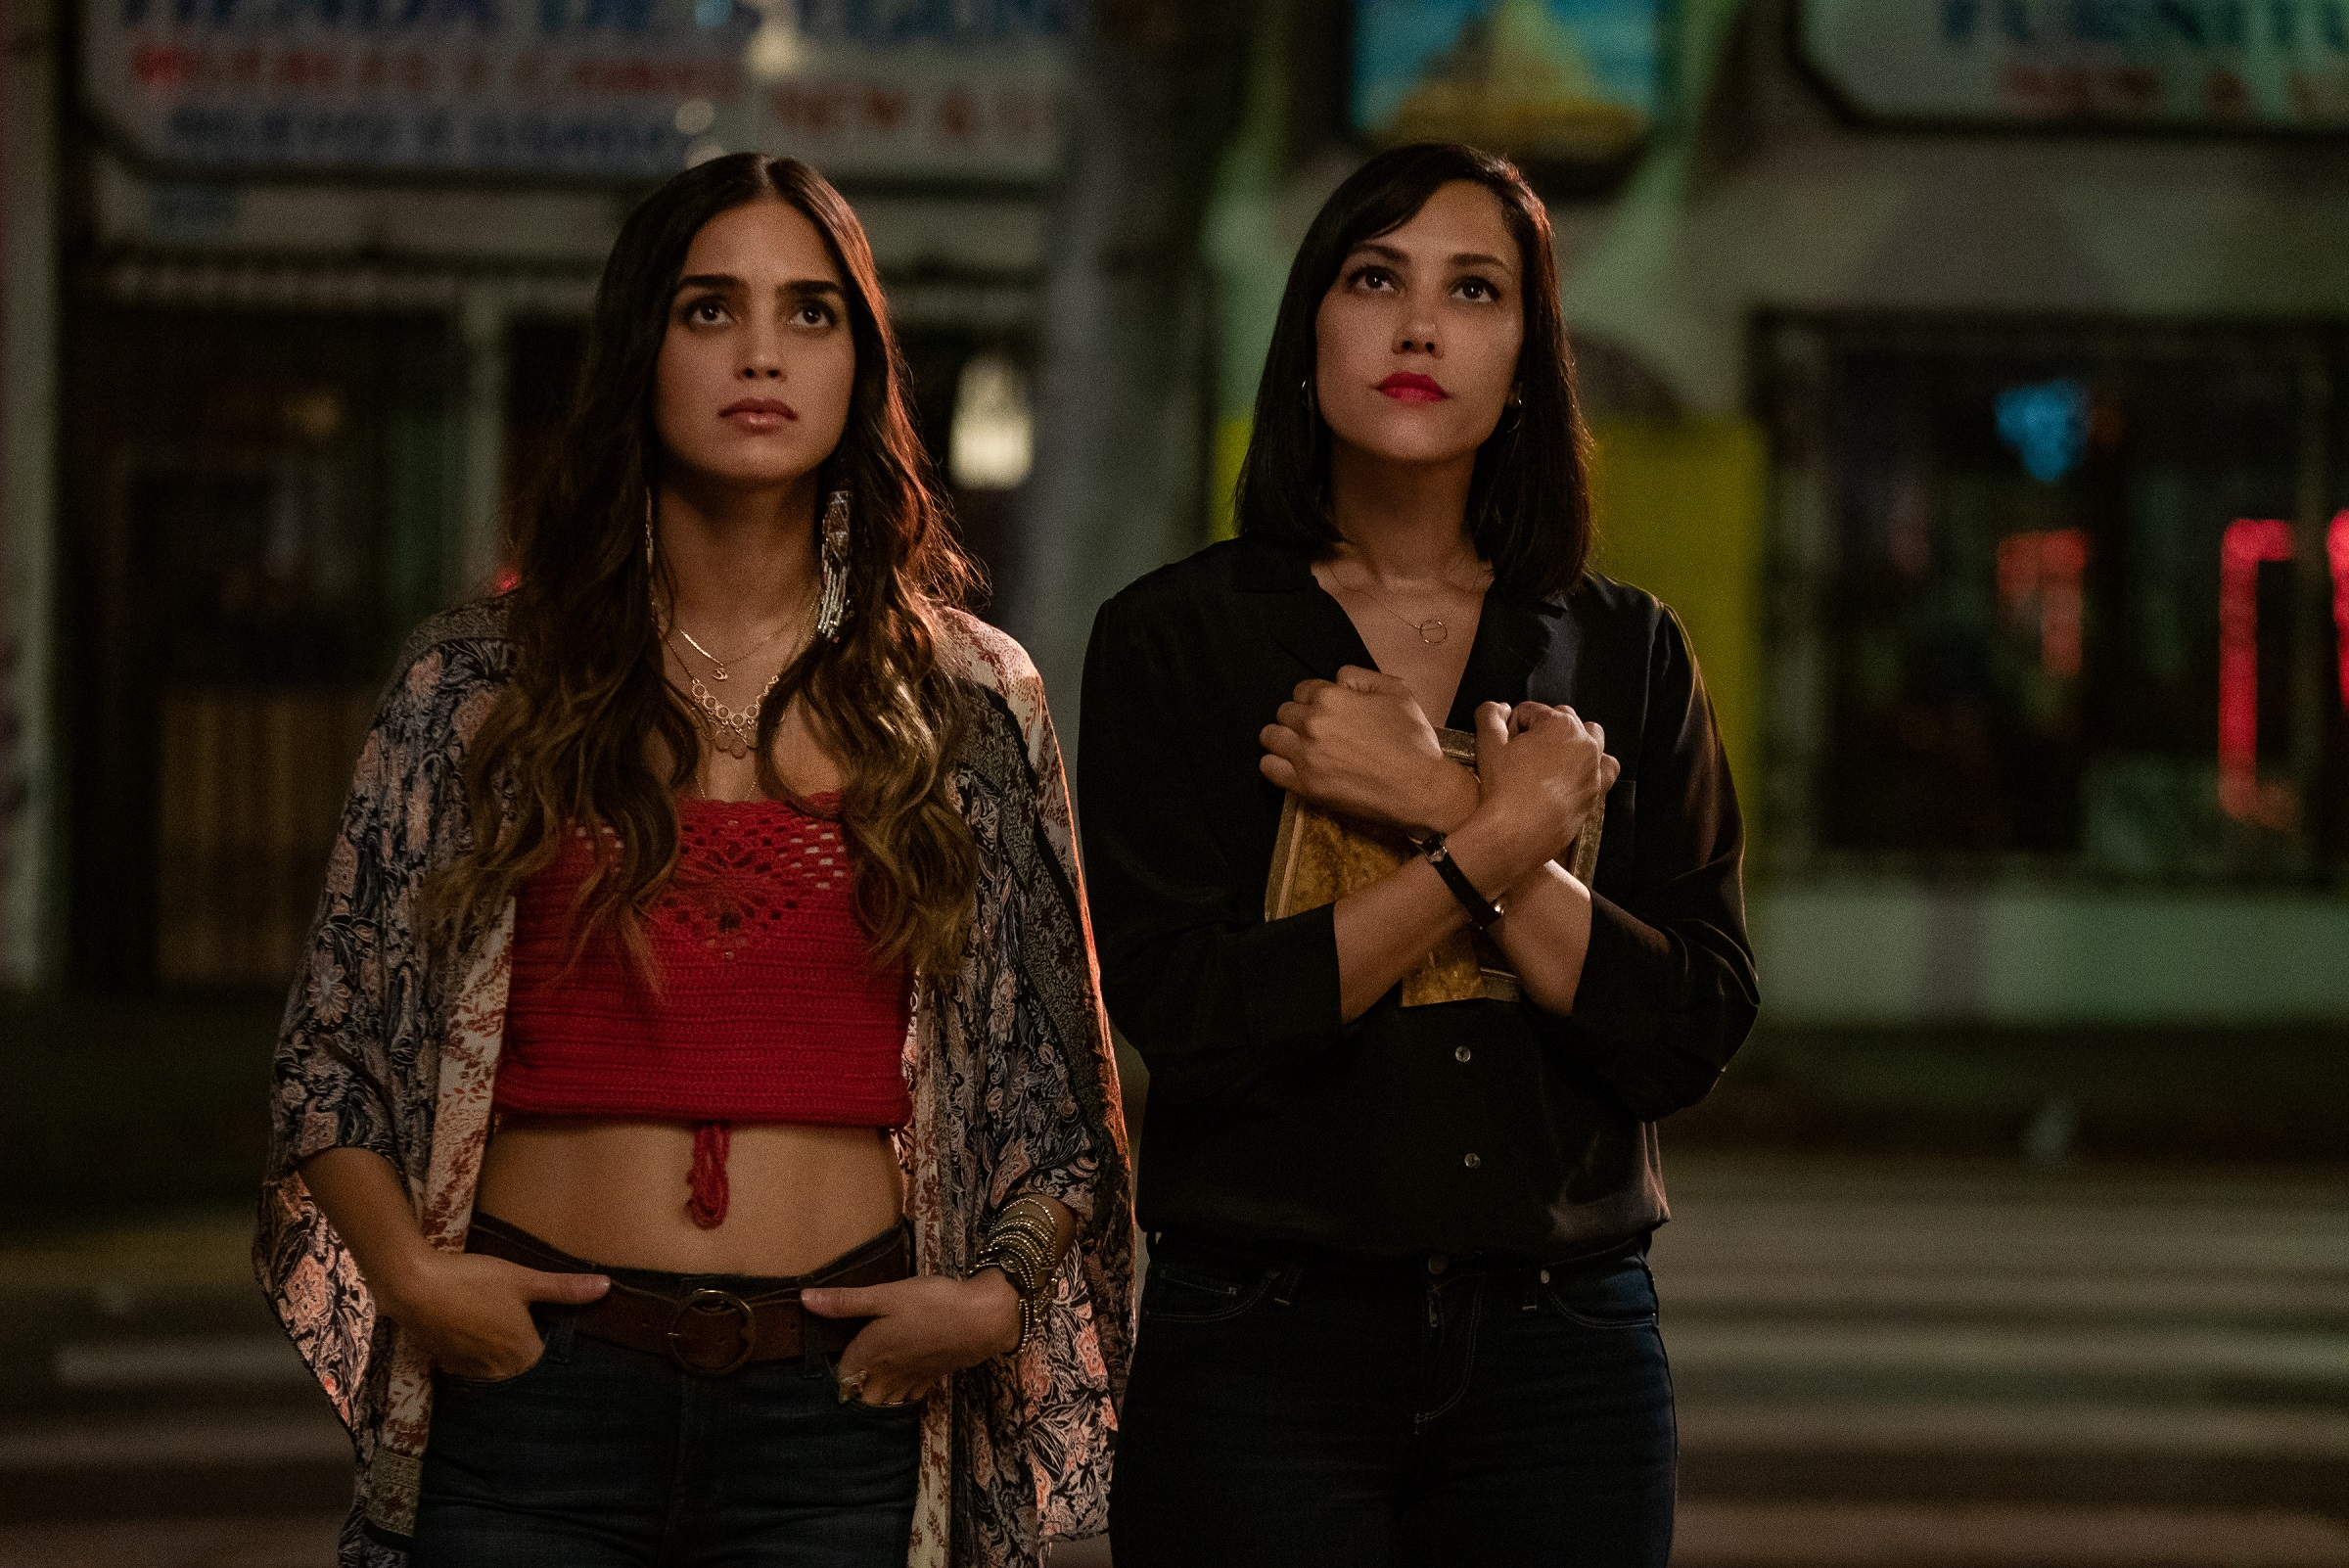 Lyn, played by Melissa Barrera, and Emma, played by Mishel Prade, stand outside the bar owned by their mother in the Starz show Vida.